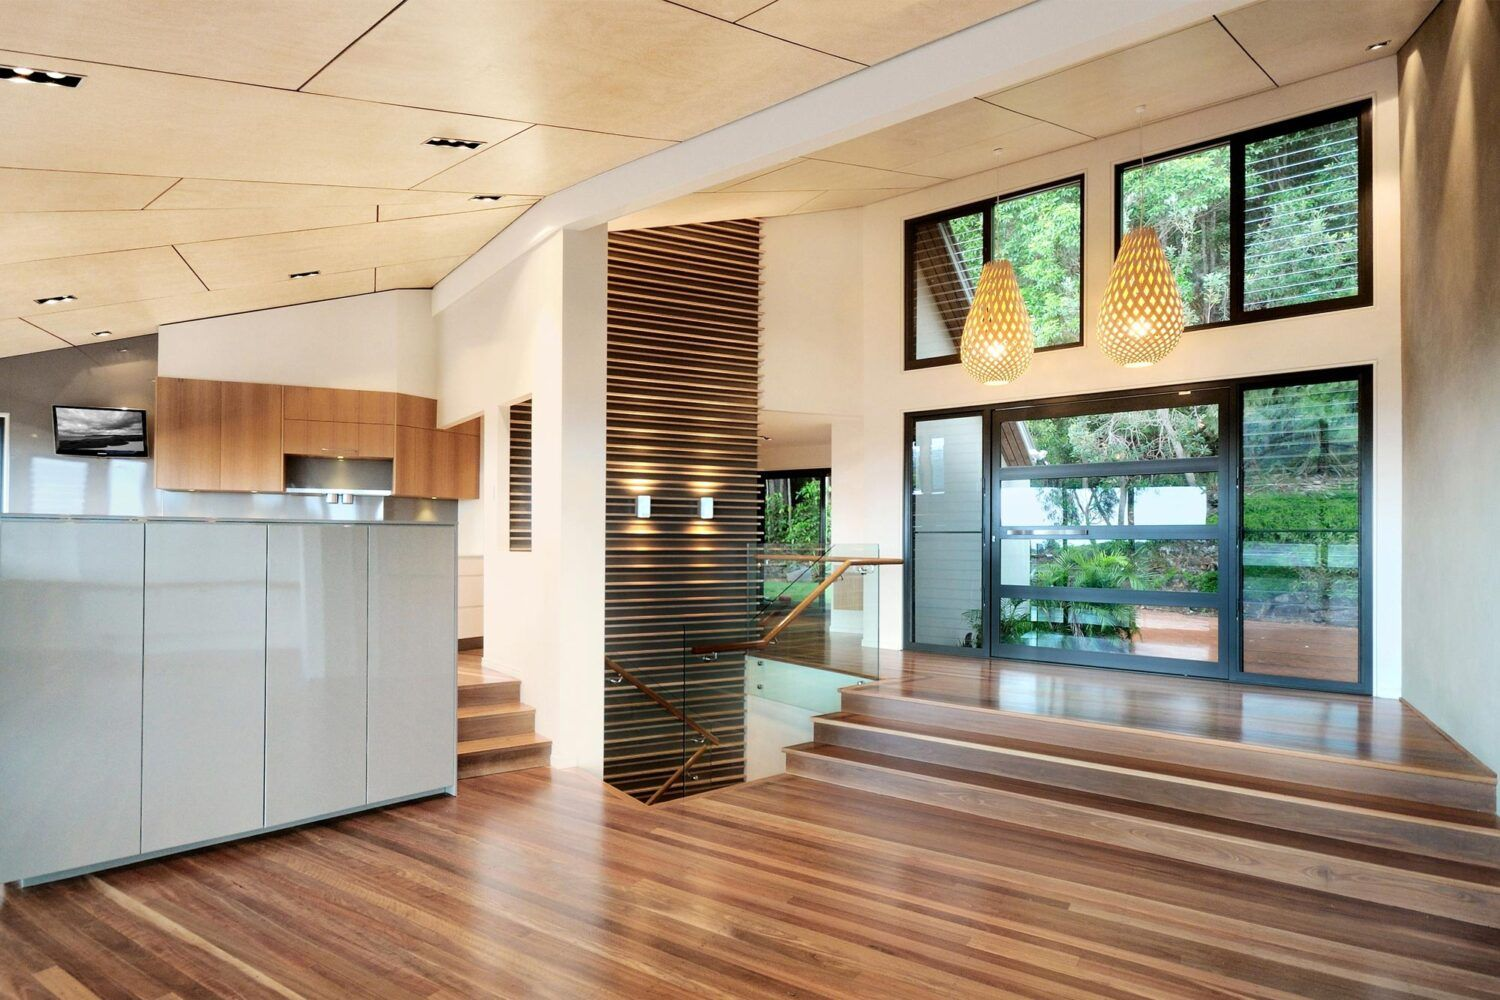 interior-design-sunshine-coast-coolum-1